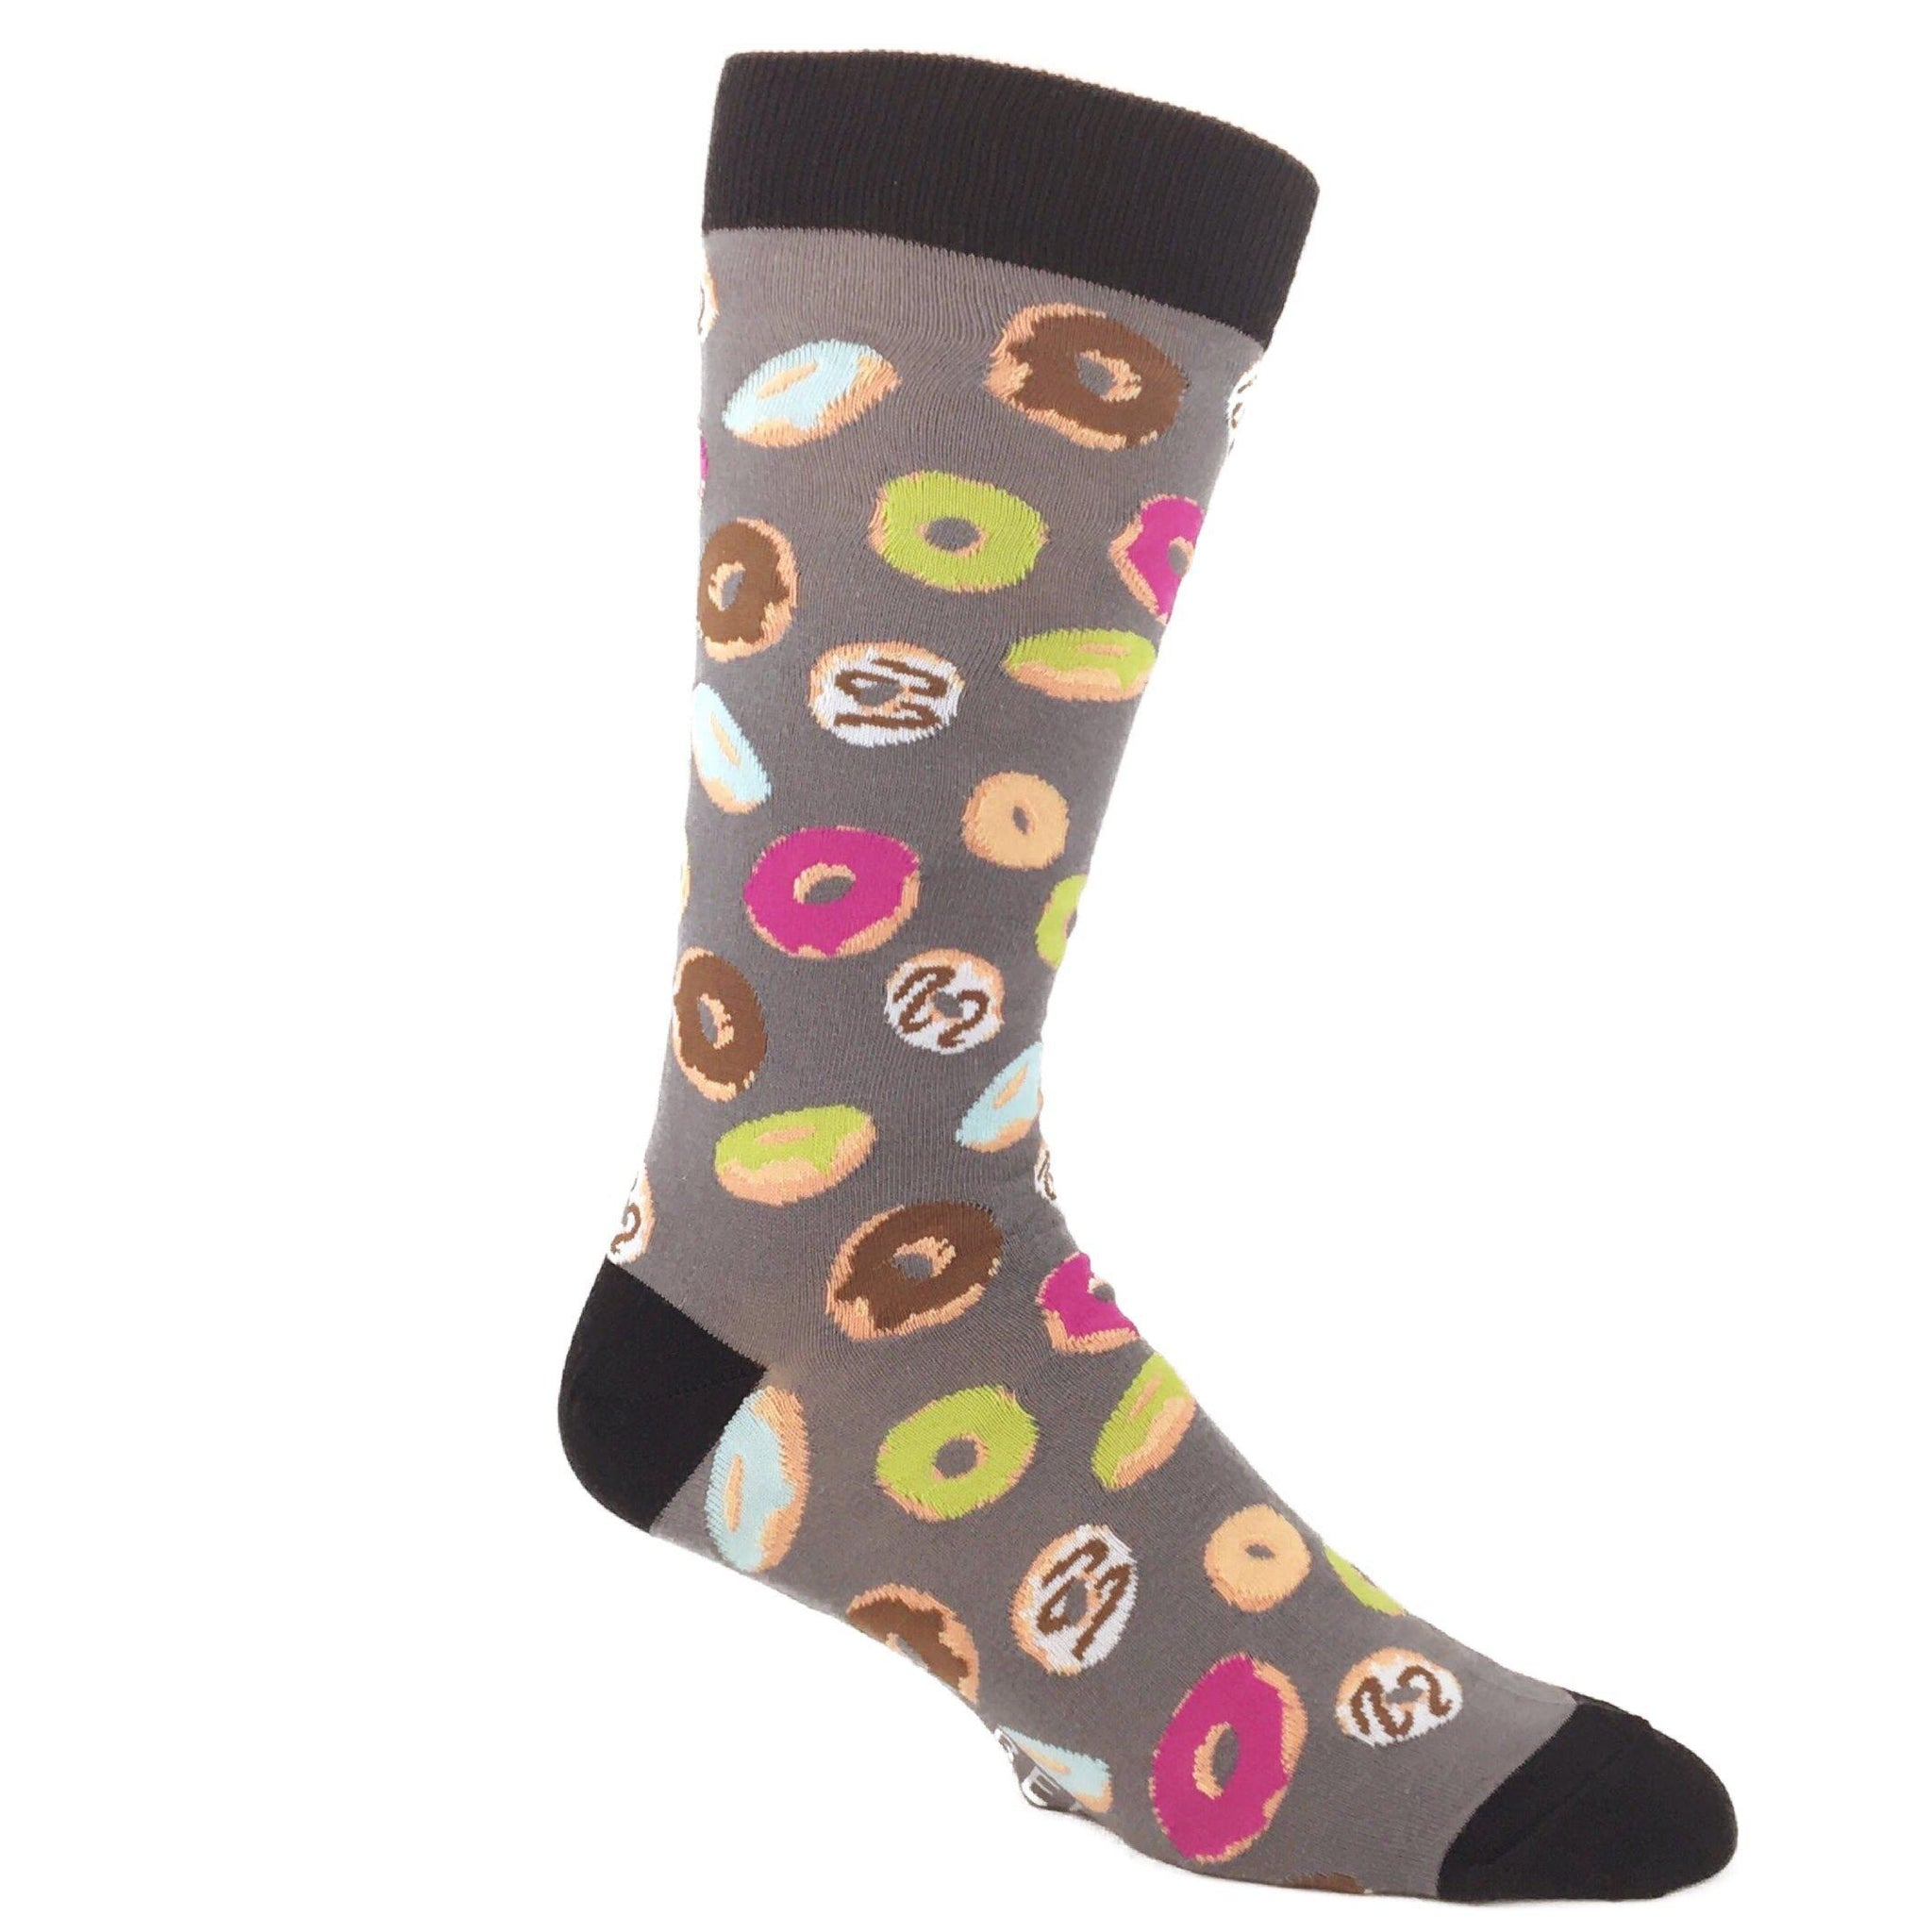 How To Make Donuts Out Of Socks